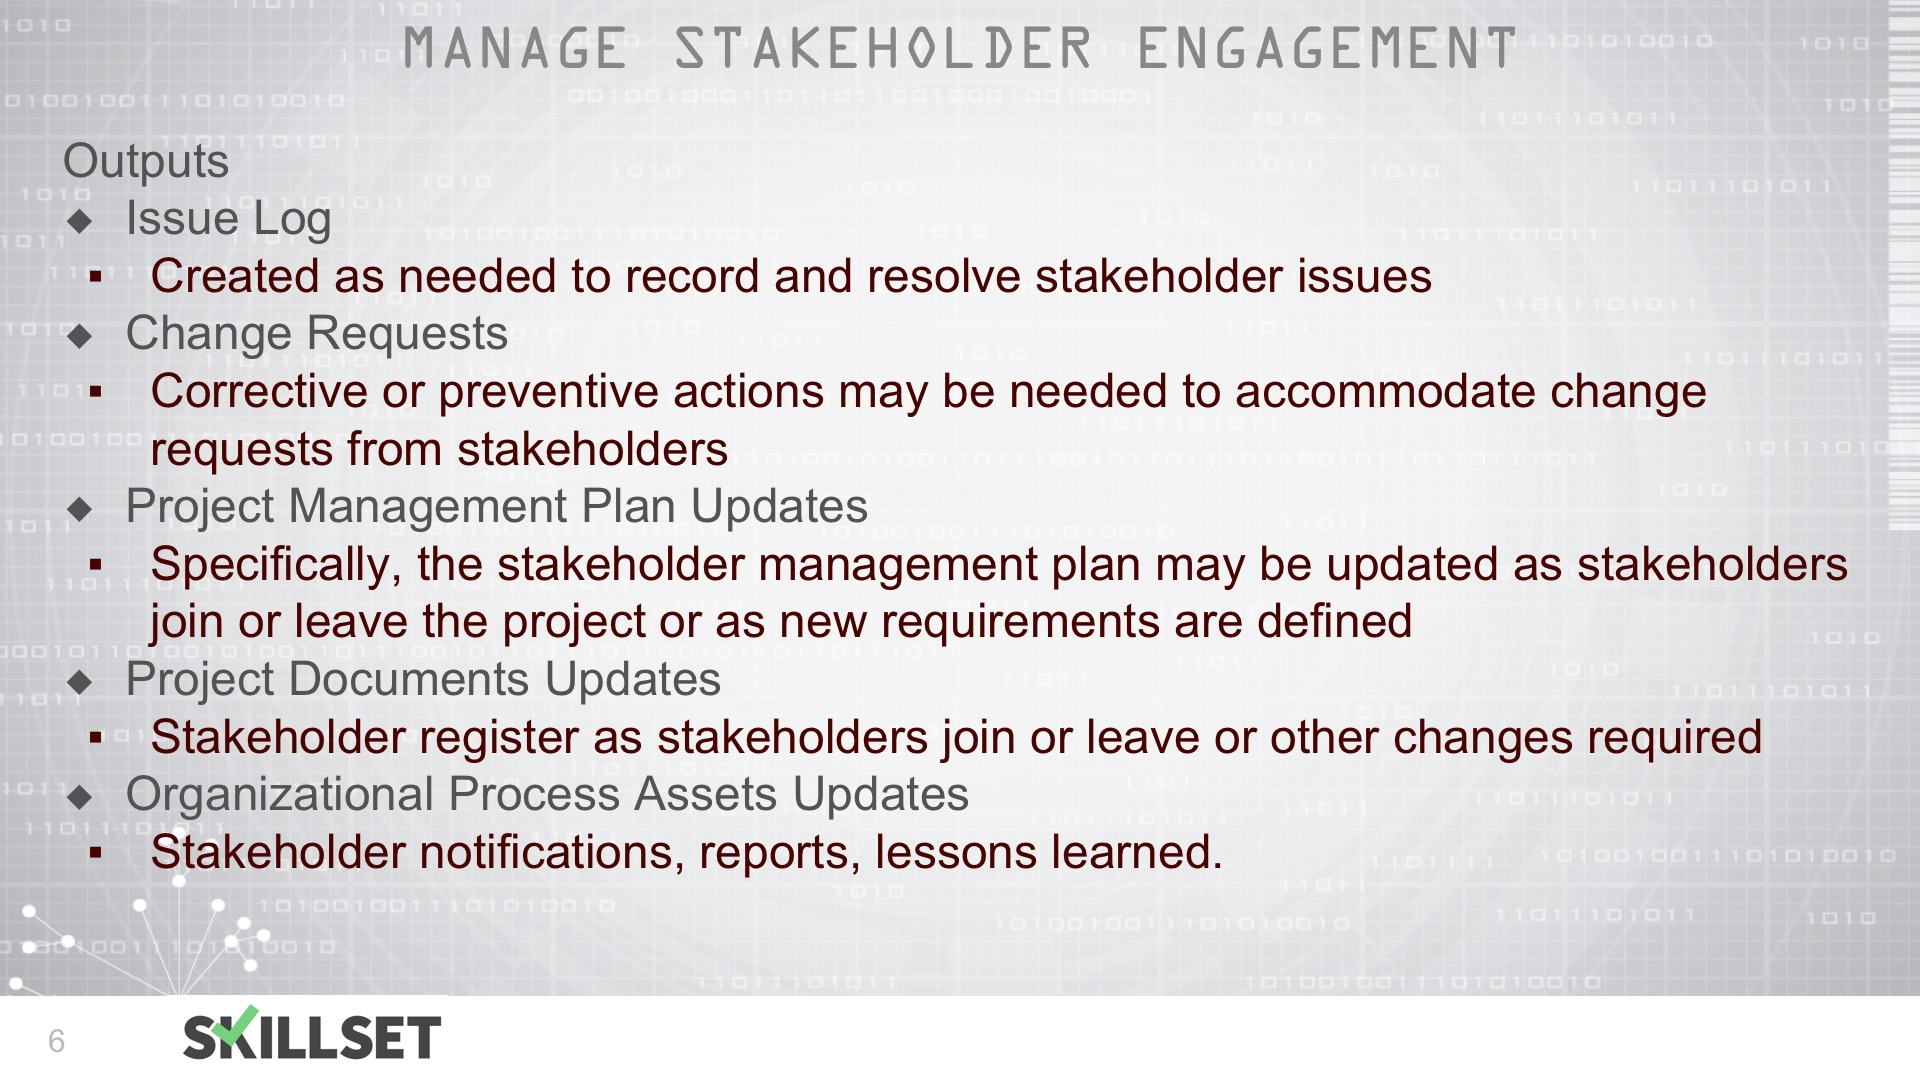 T103-Manage Stakeholder Engagement ITTOs